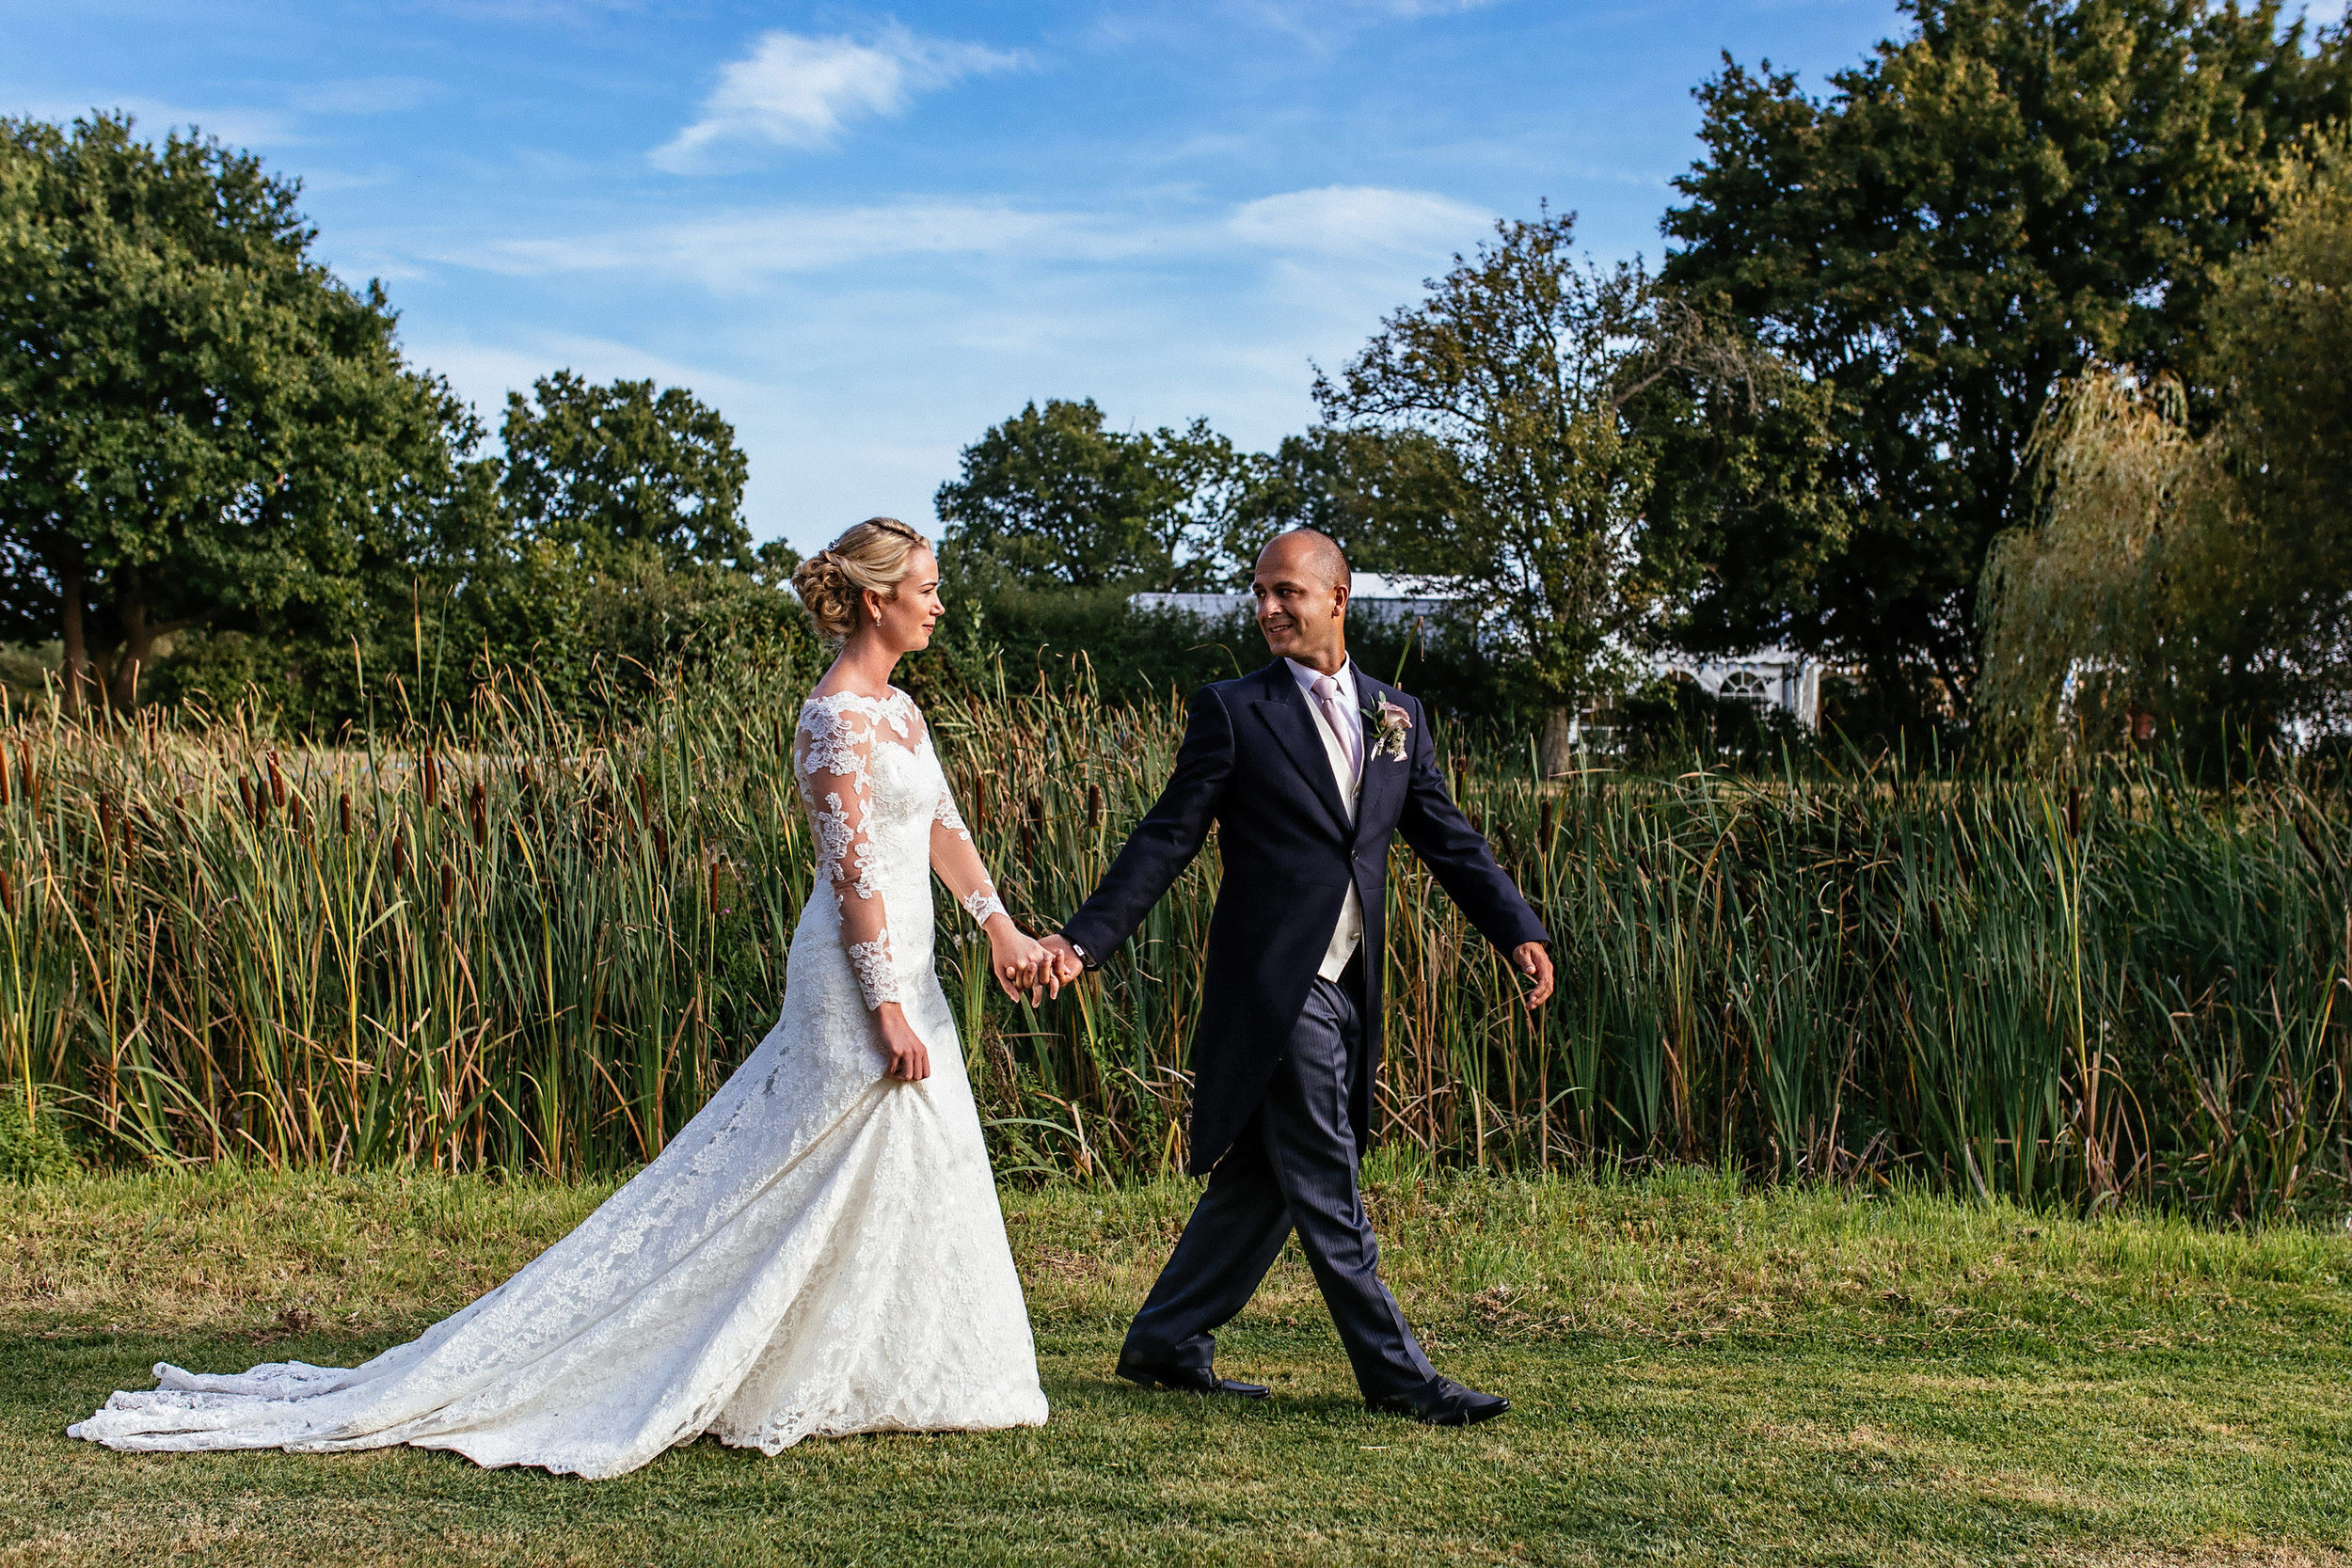 Biddenden Wedding Photographer 0115.jpg